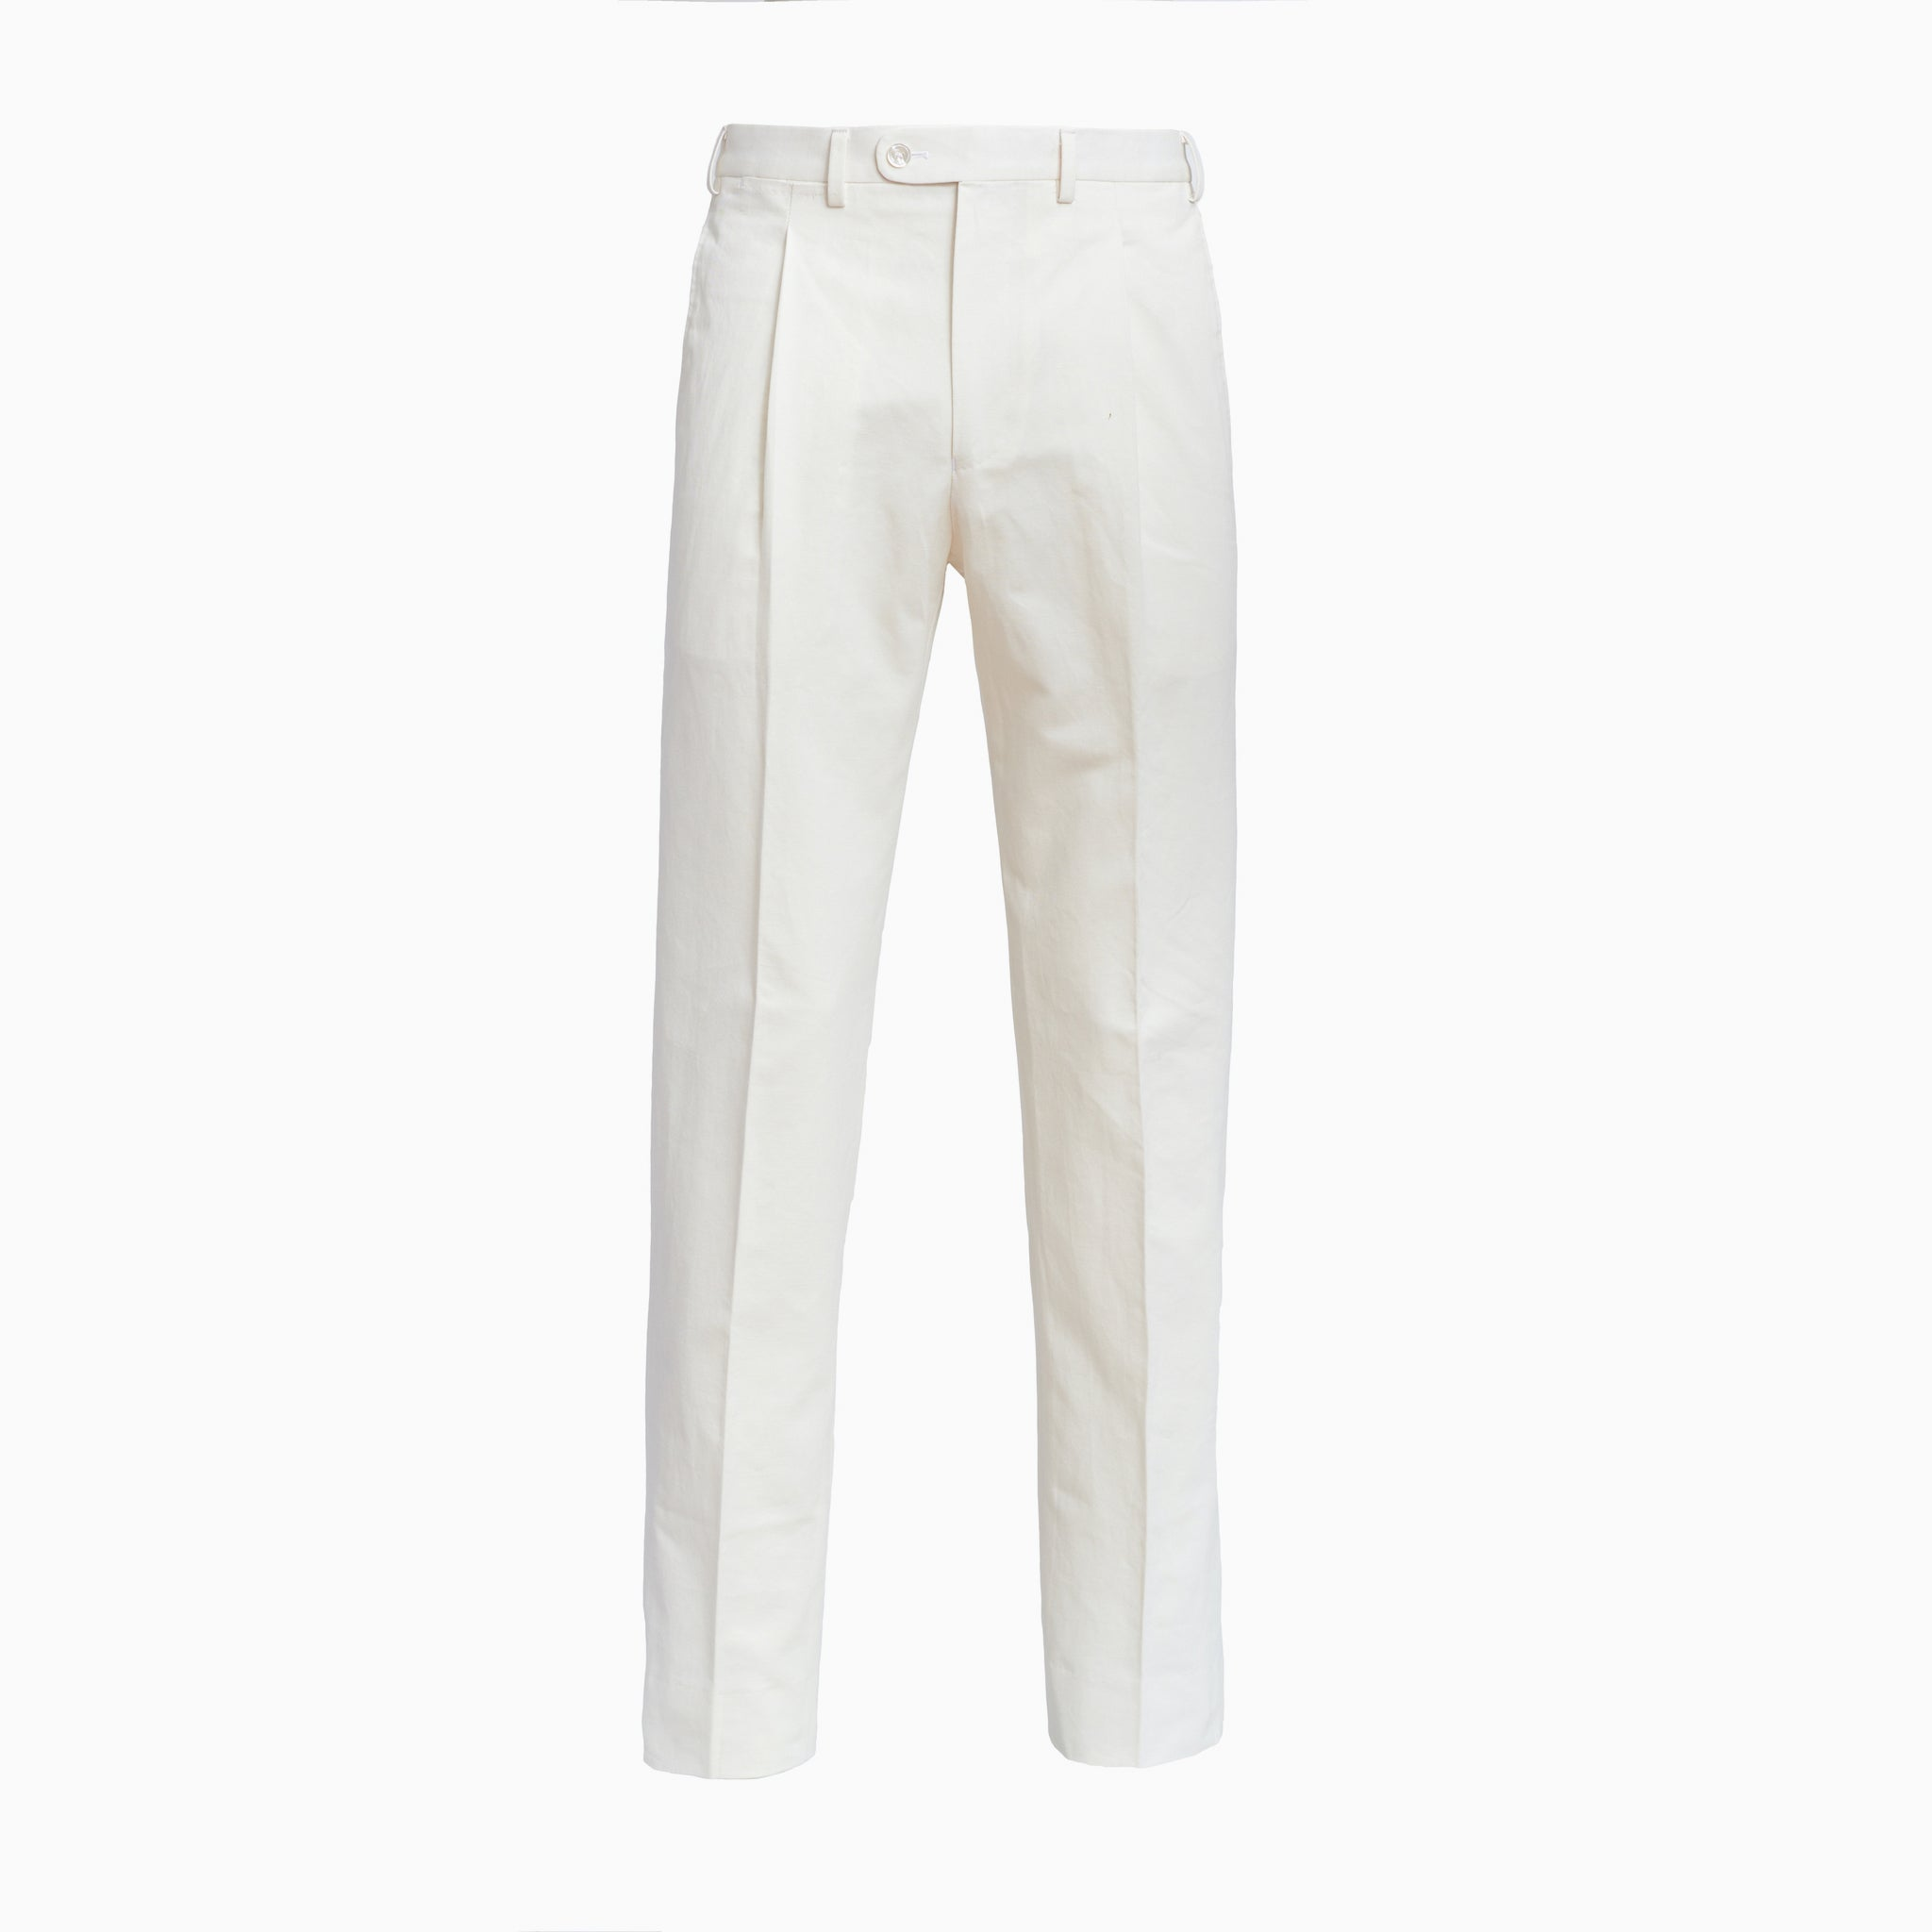 Off White Cotton Linen Trousers w/ Single Pleat